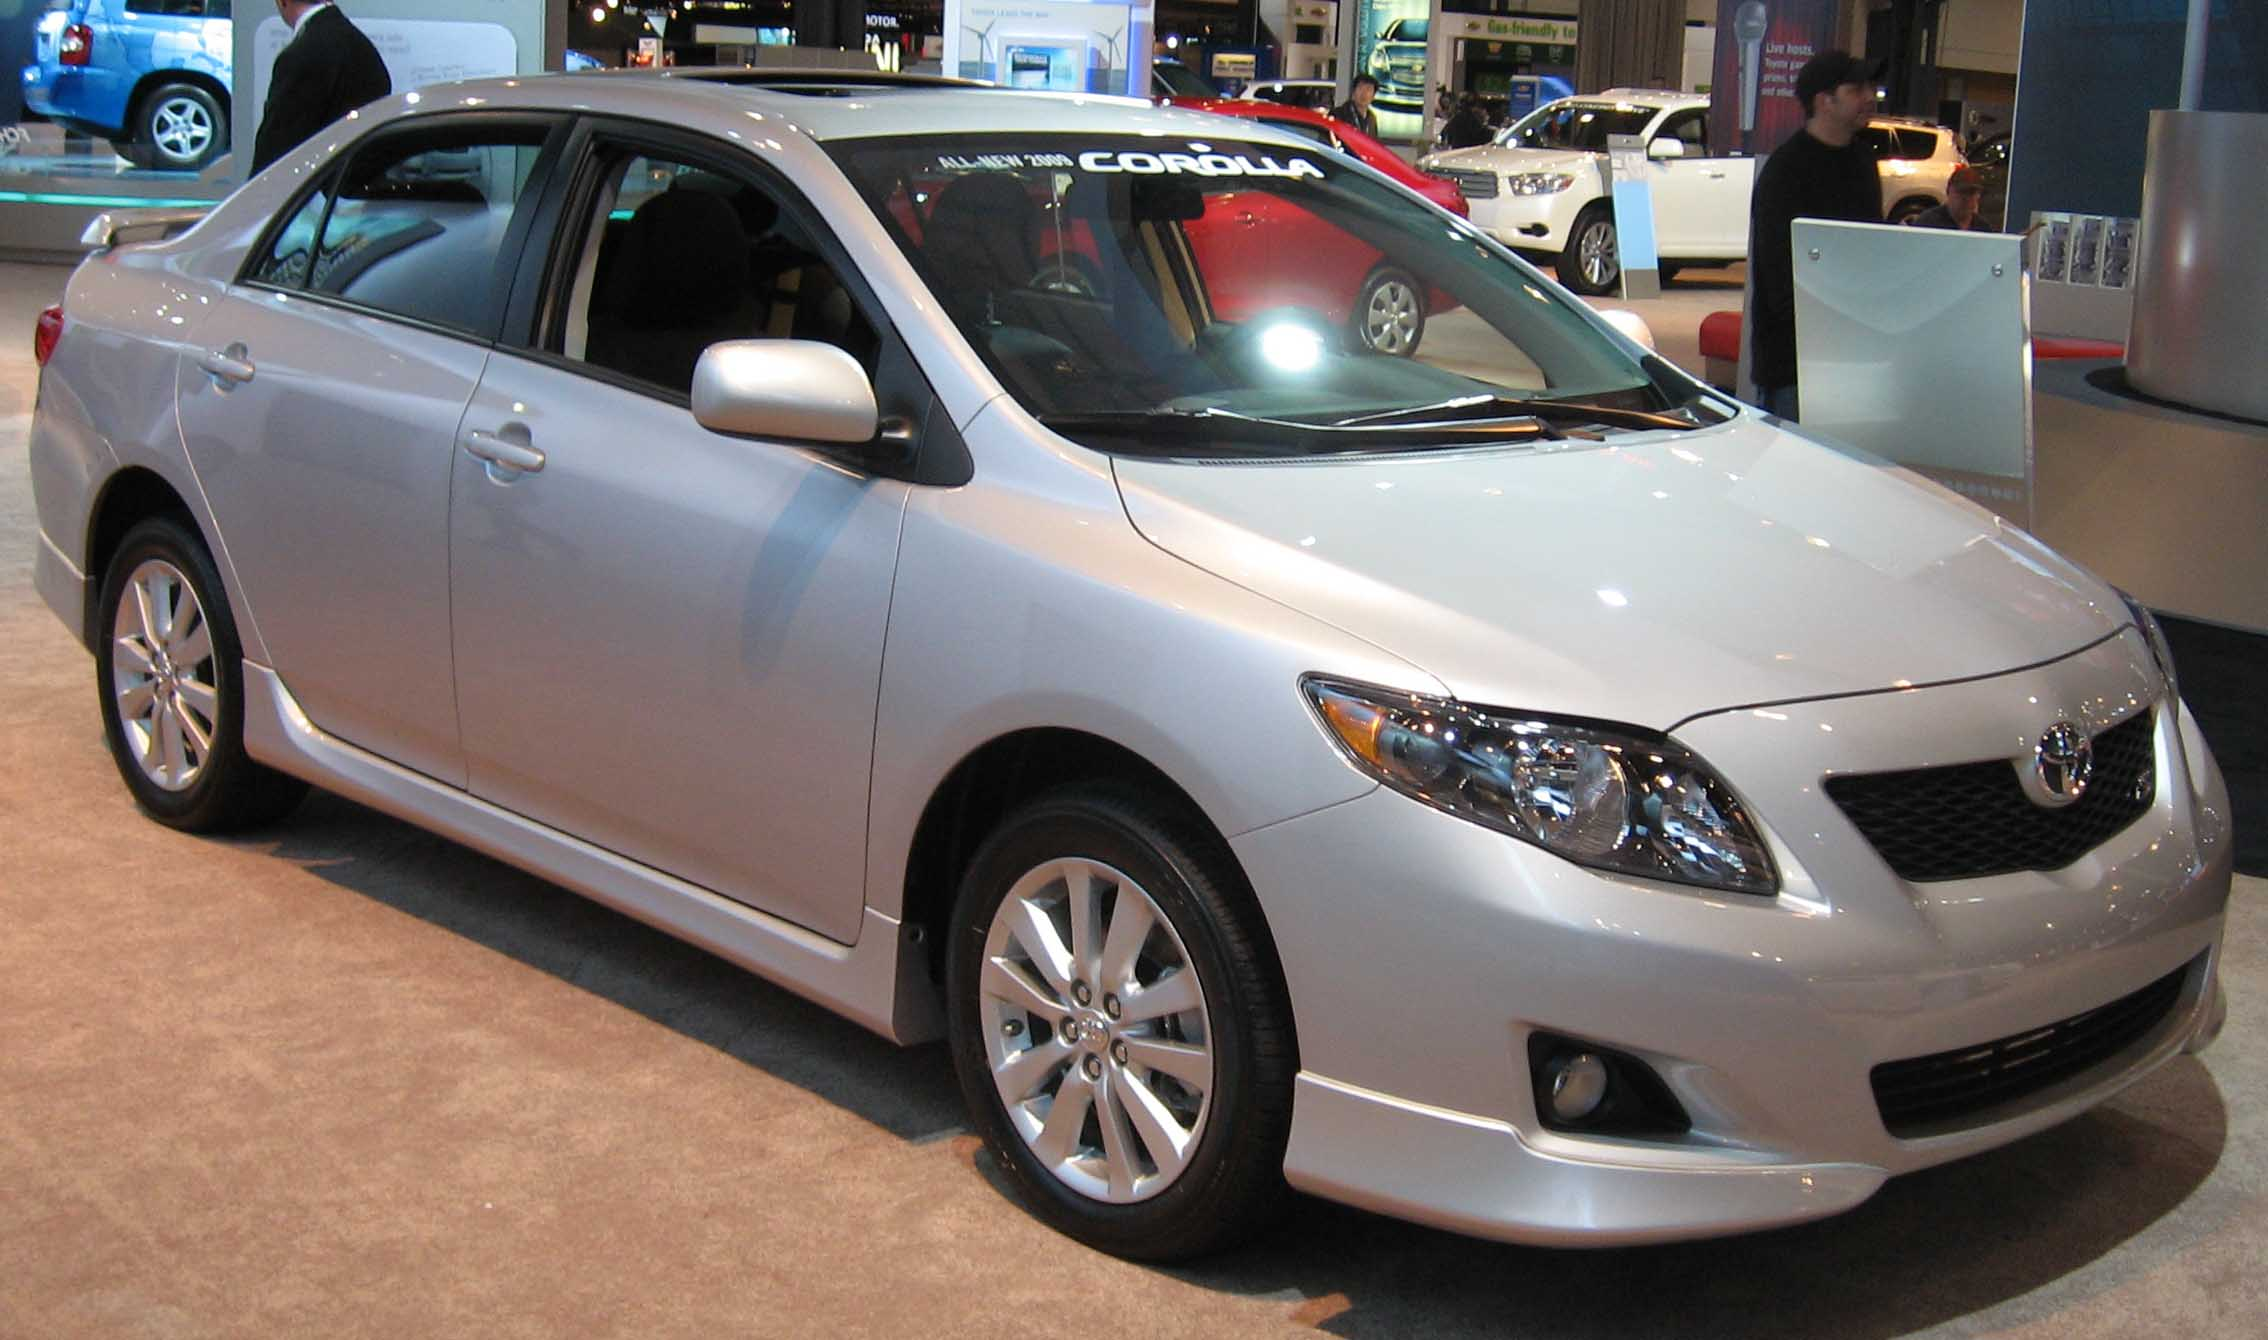 Toyota Corolla 2009 photo - 2